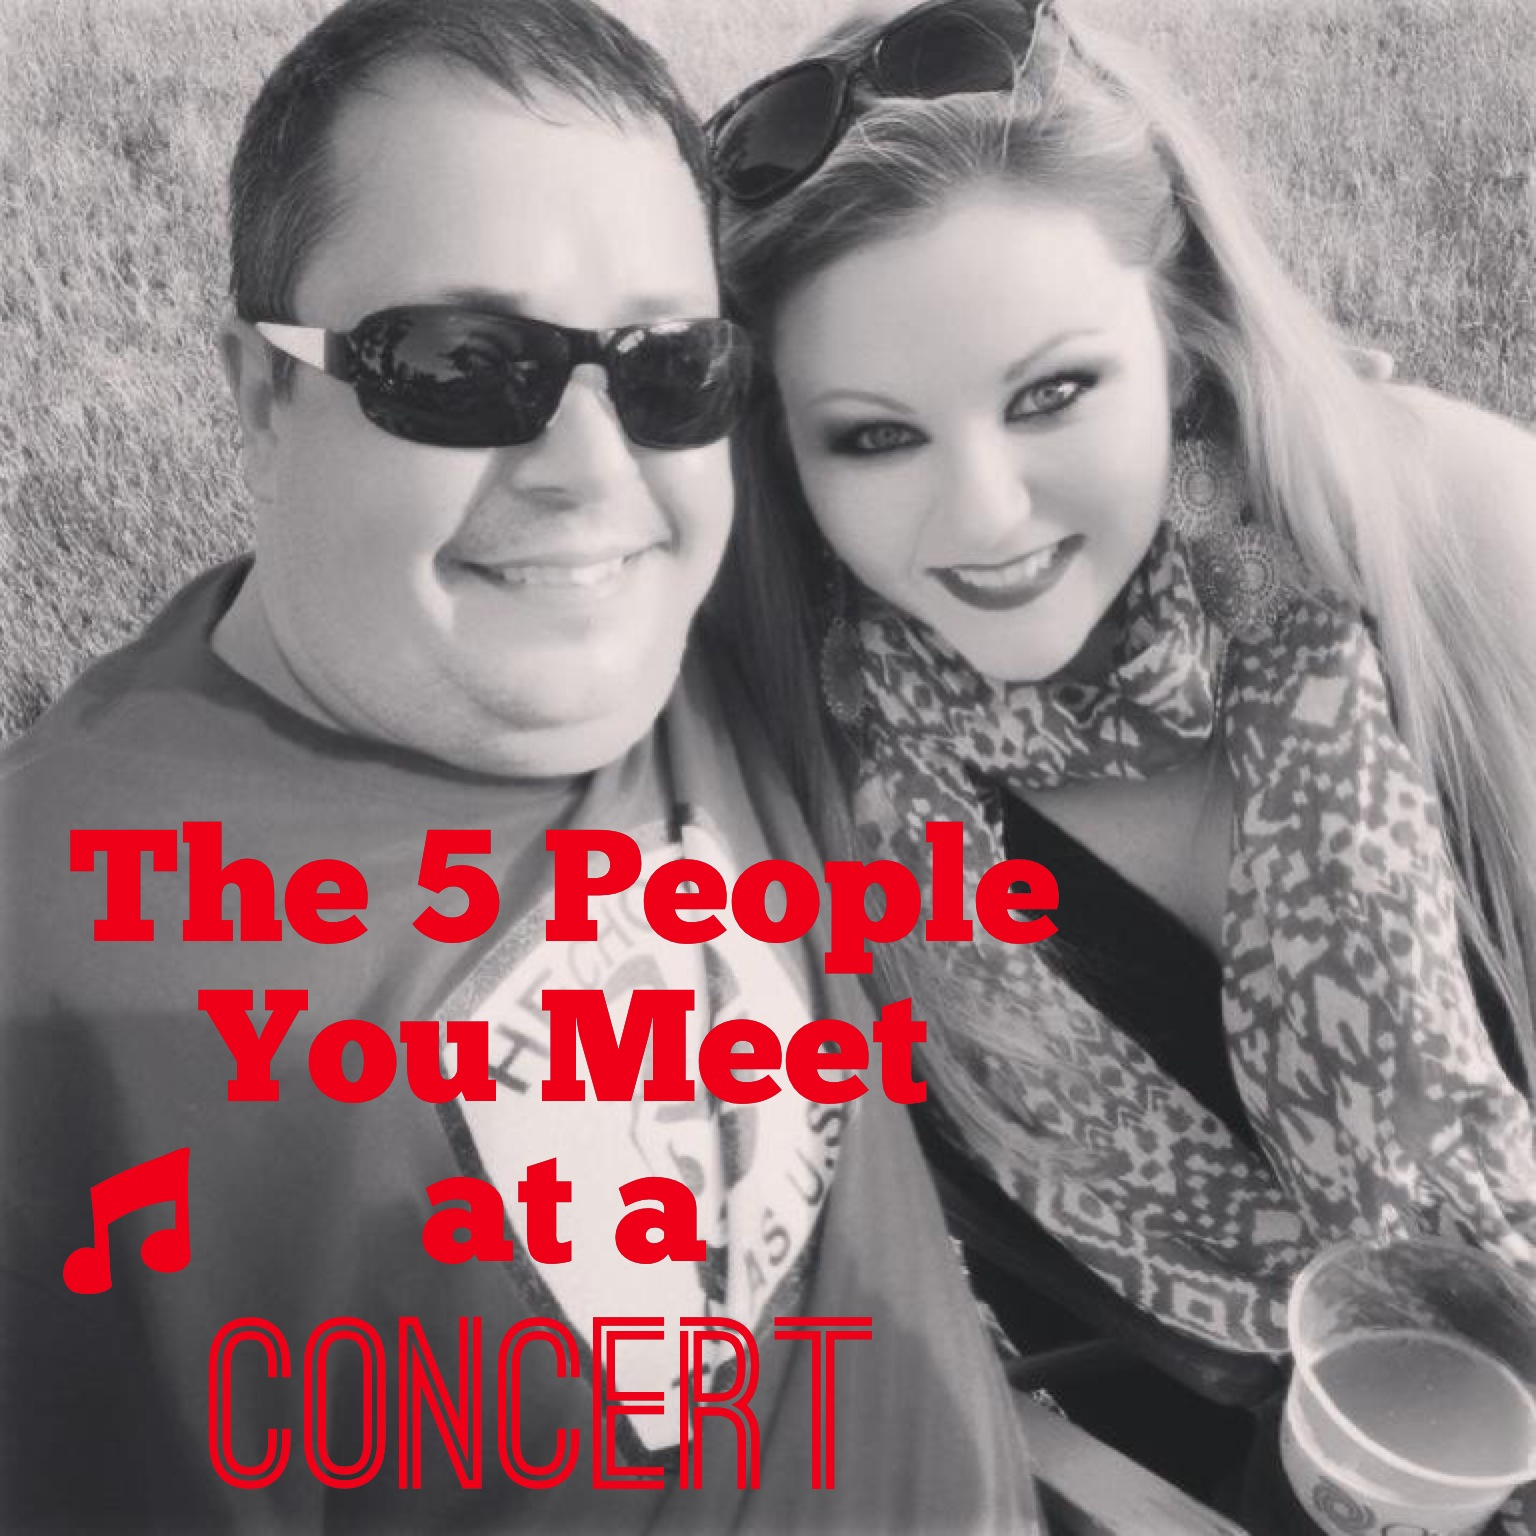 The 5 People You Meet at a Concert